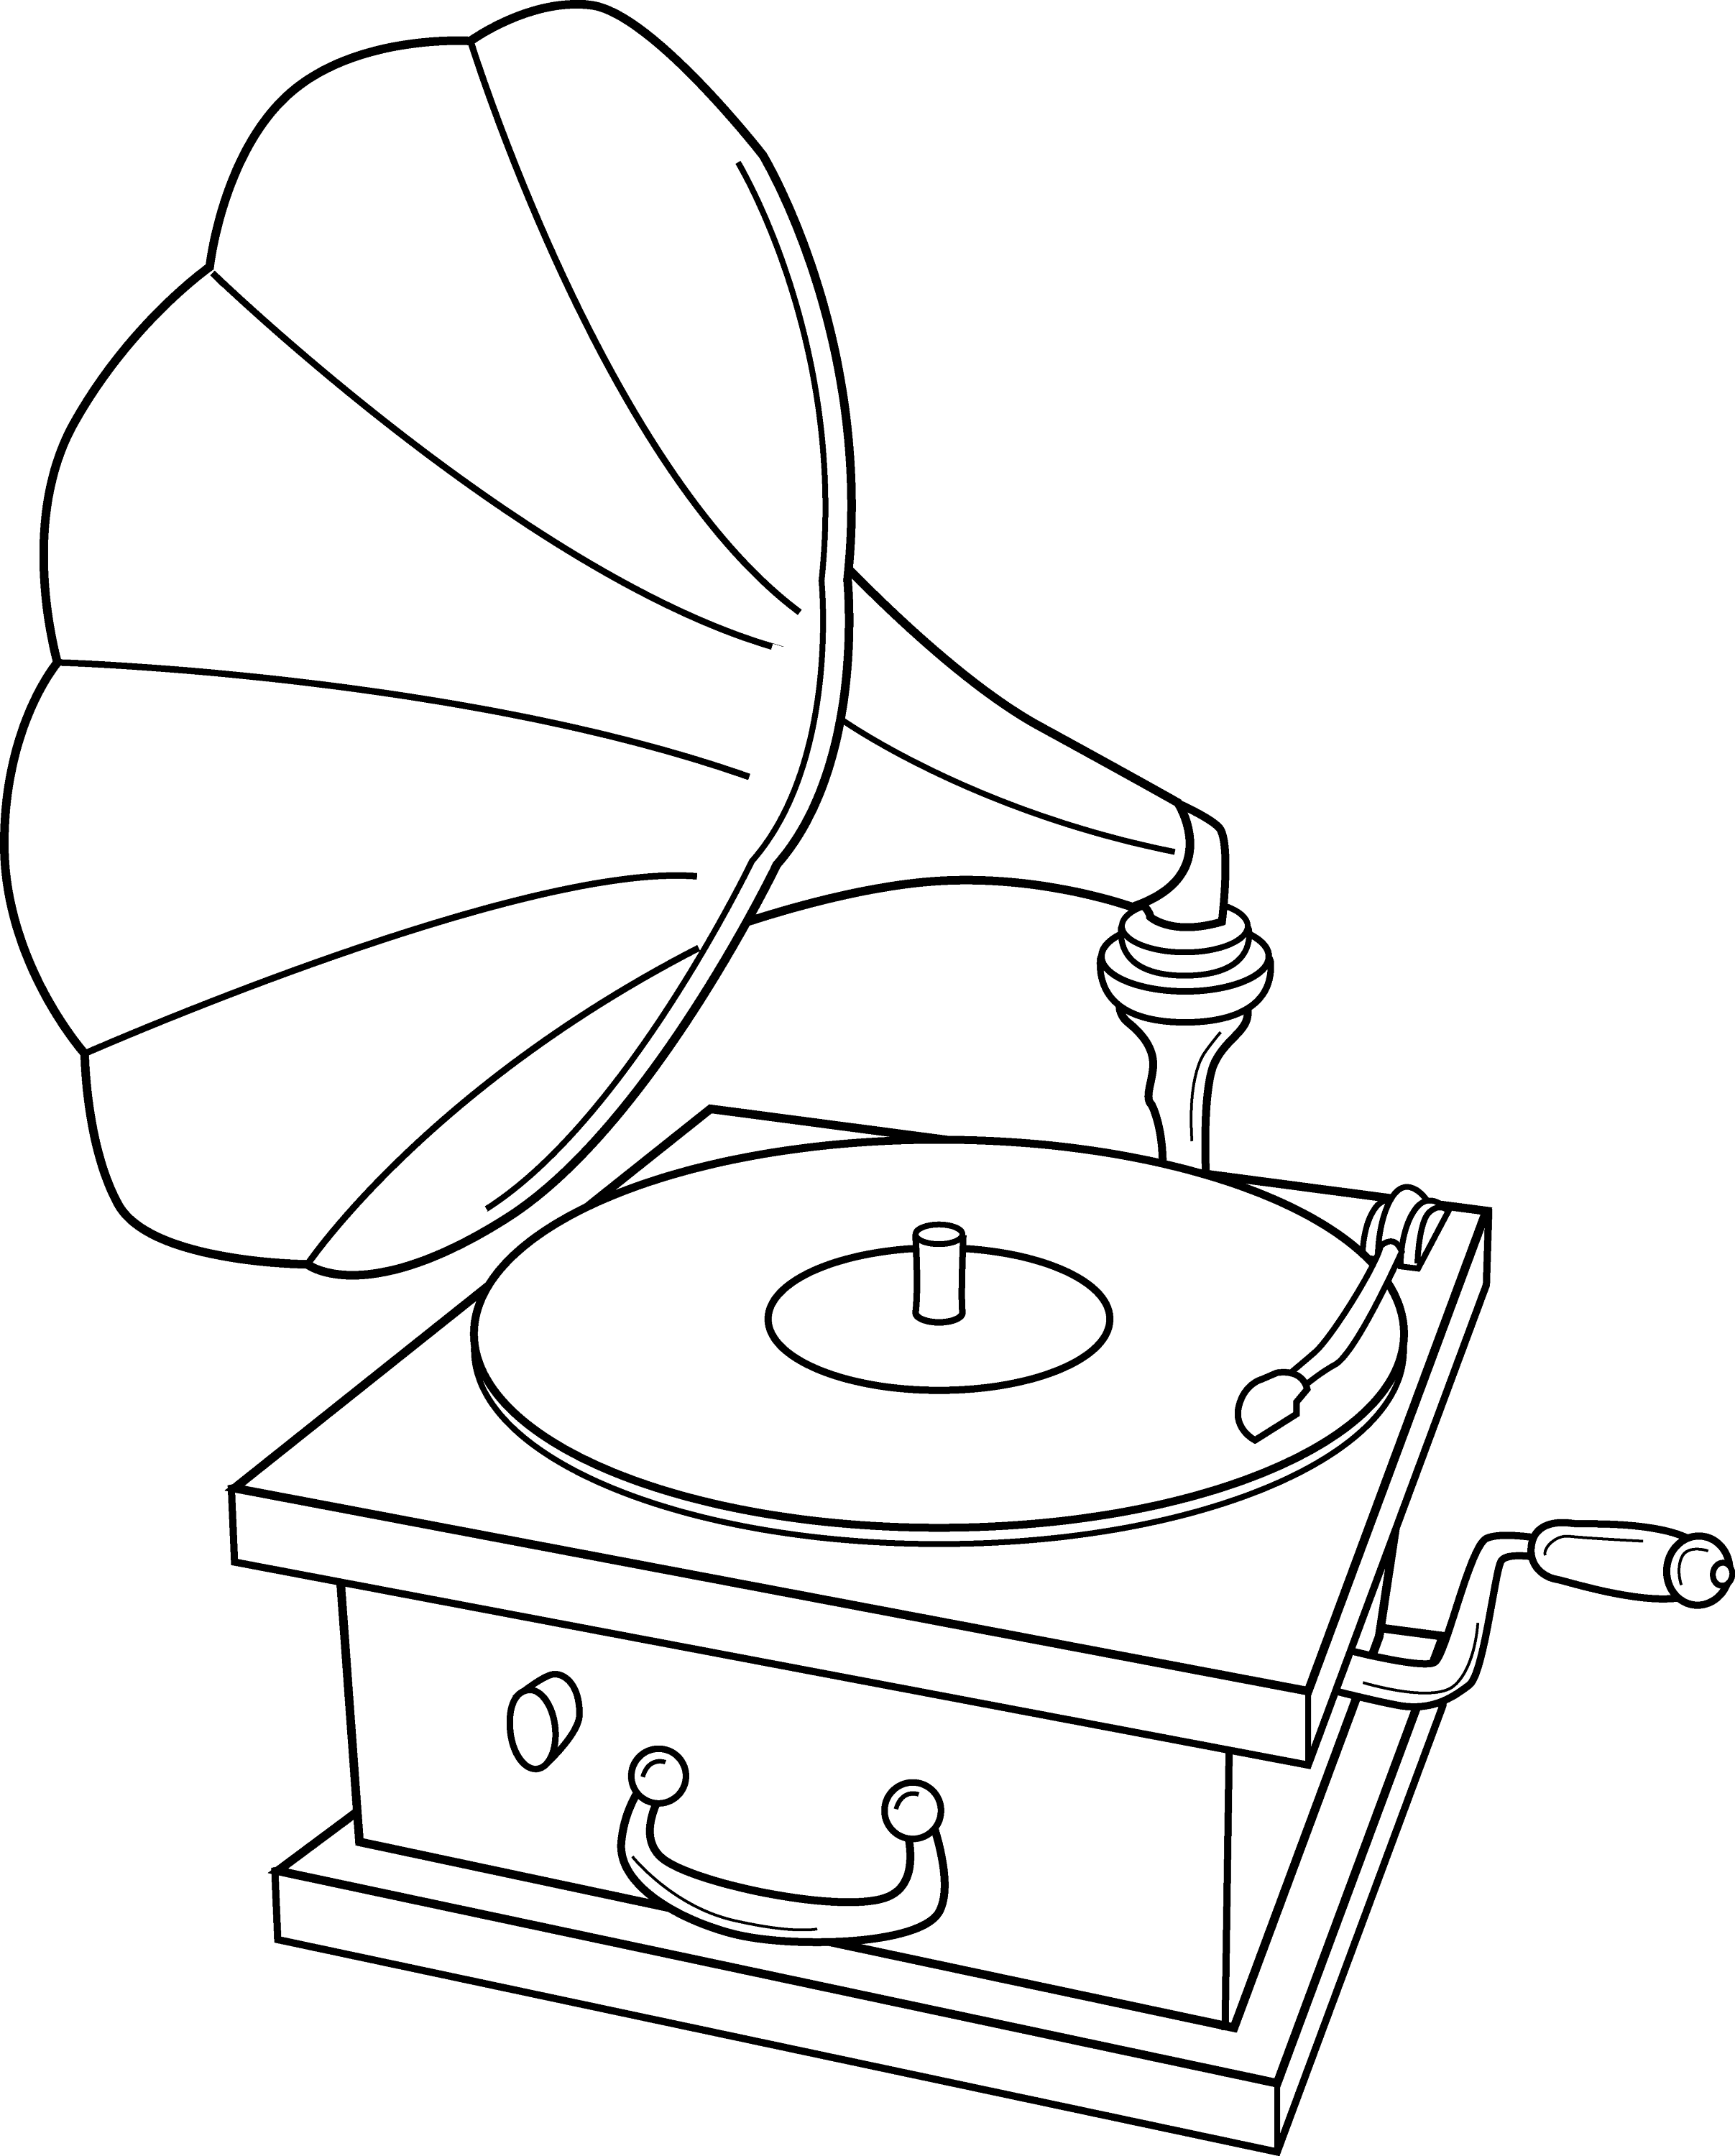 record player coloring page free clip art Red Roller Skates Clip Art 1950s Record Player Clip Art